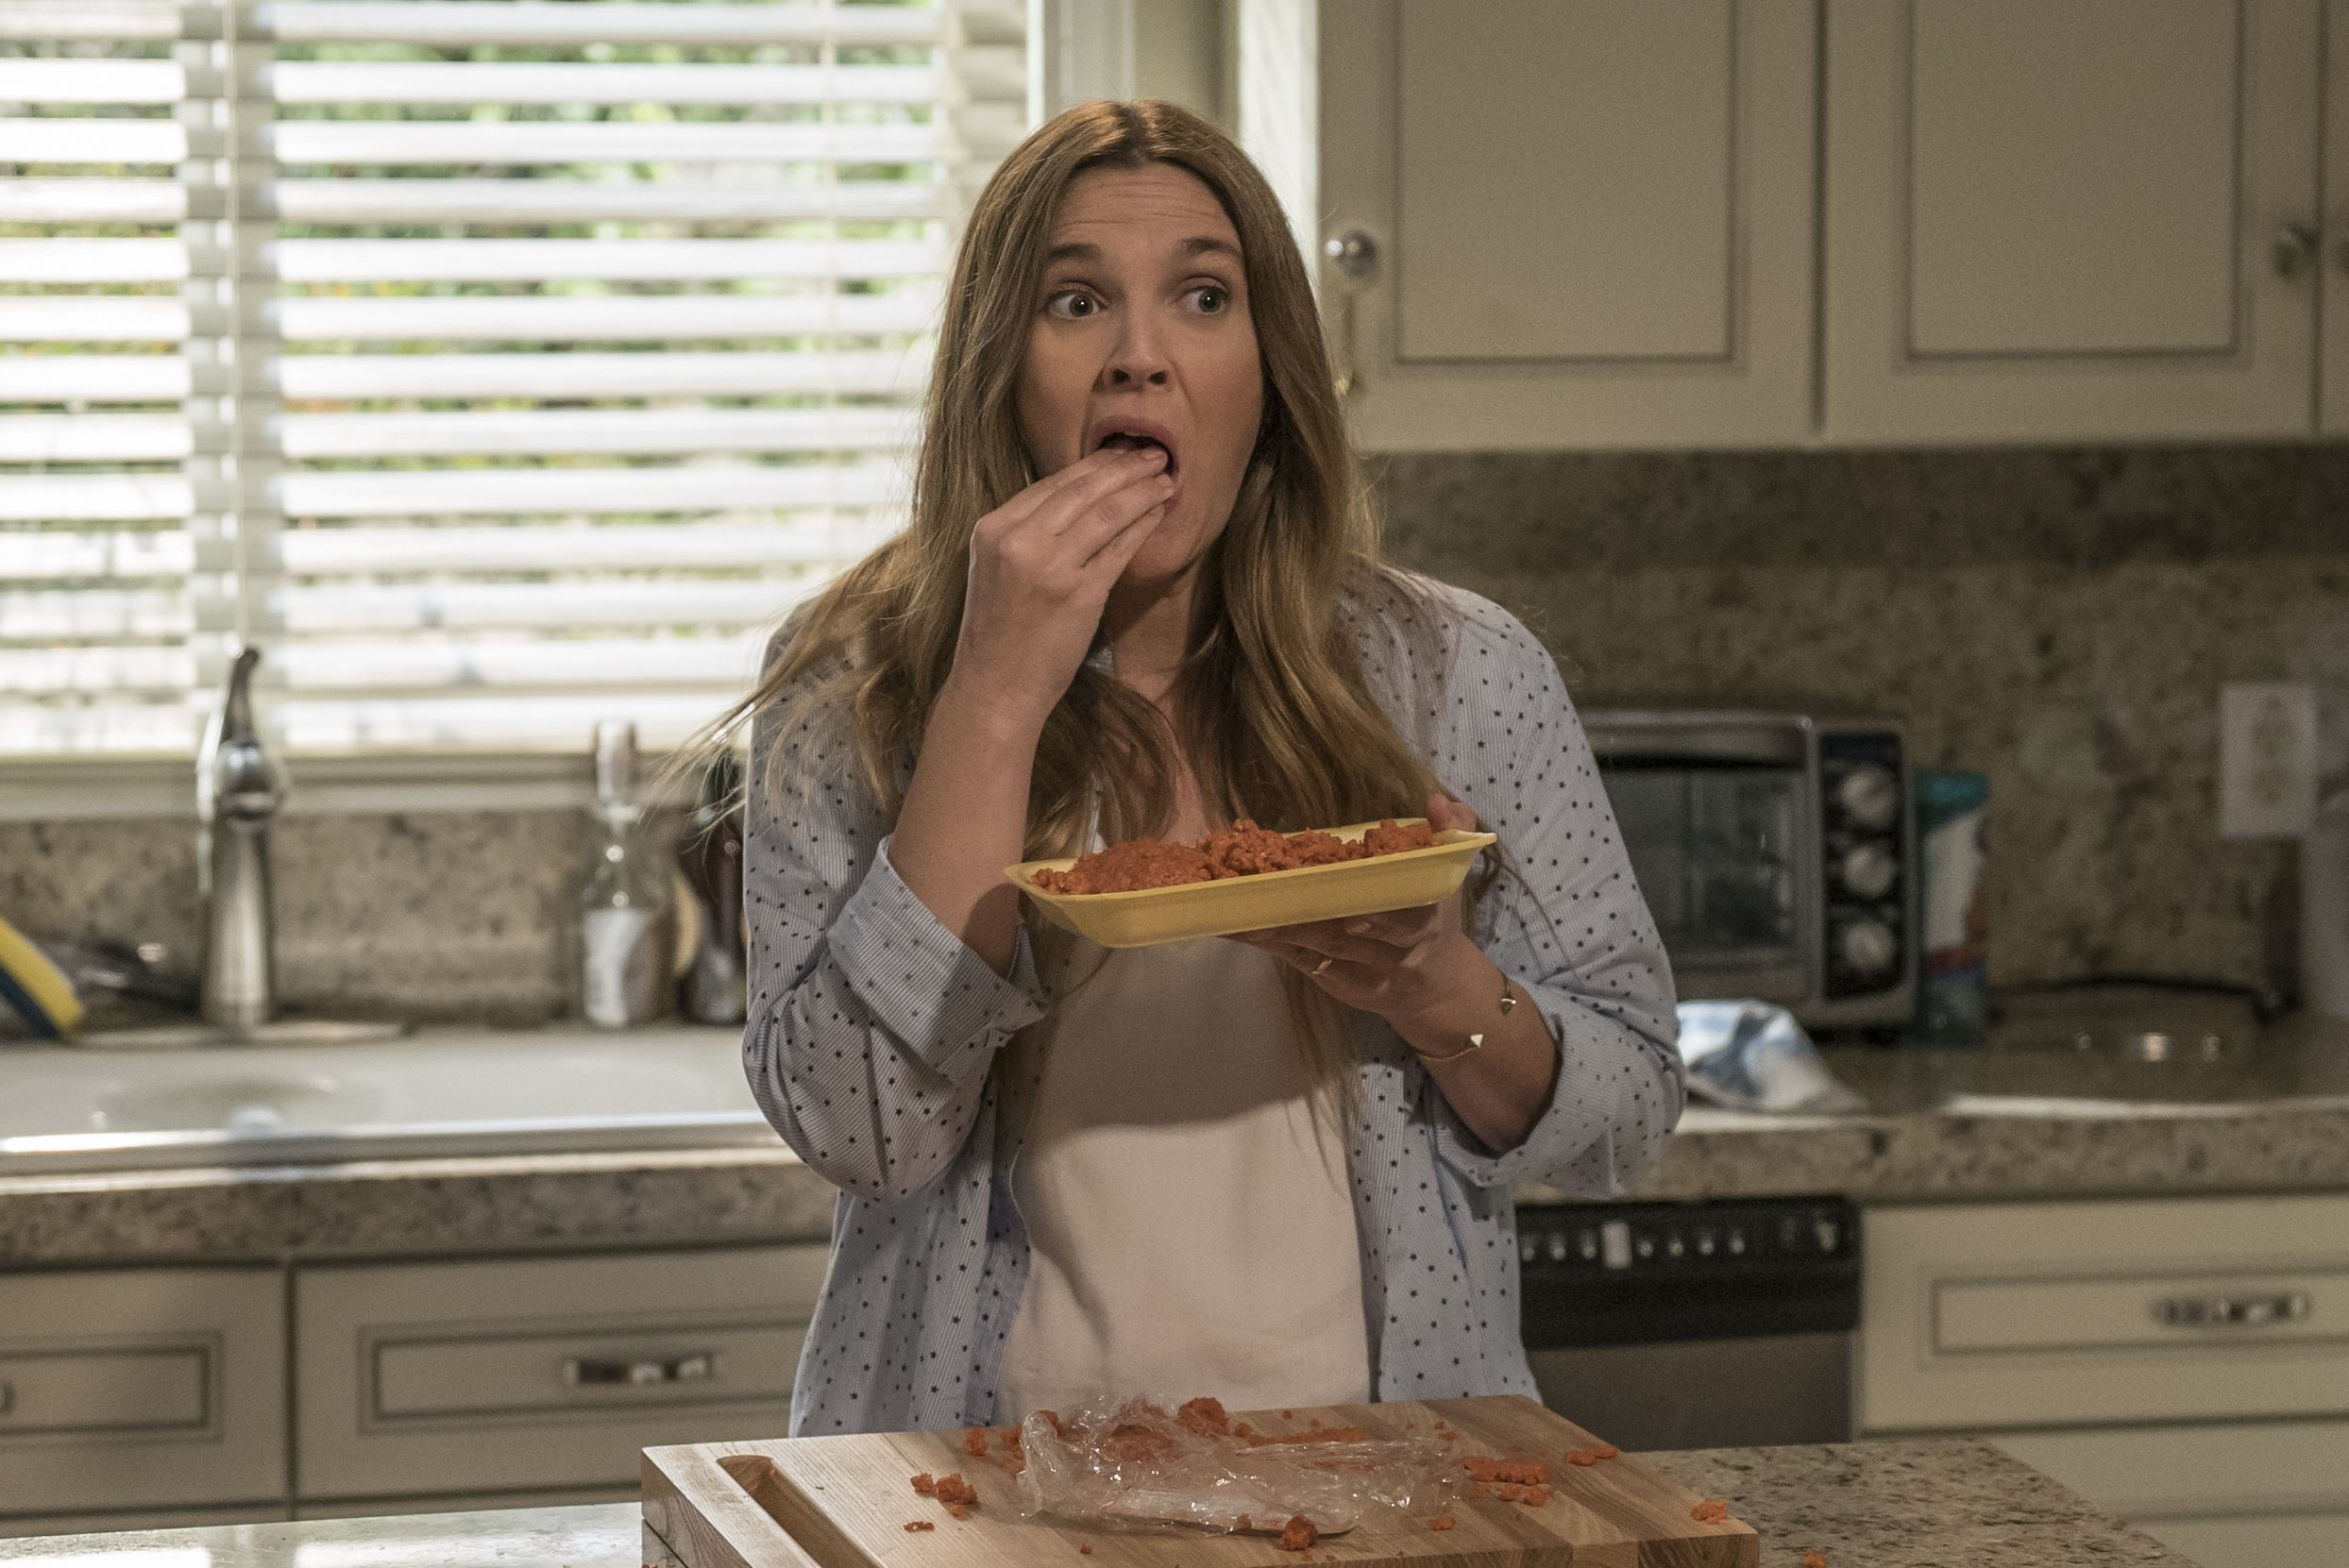 So now we know just what Drew Barrymore really eats in her cannibalistic Santa Clarita Diet